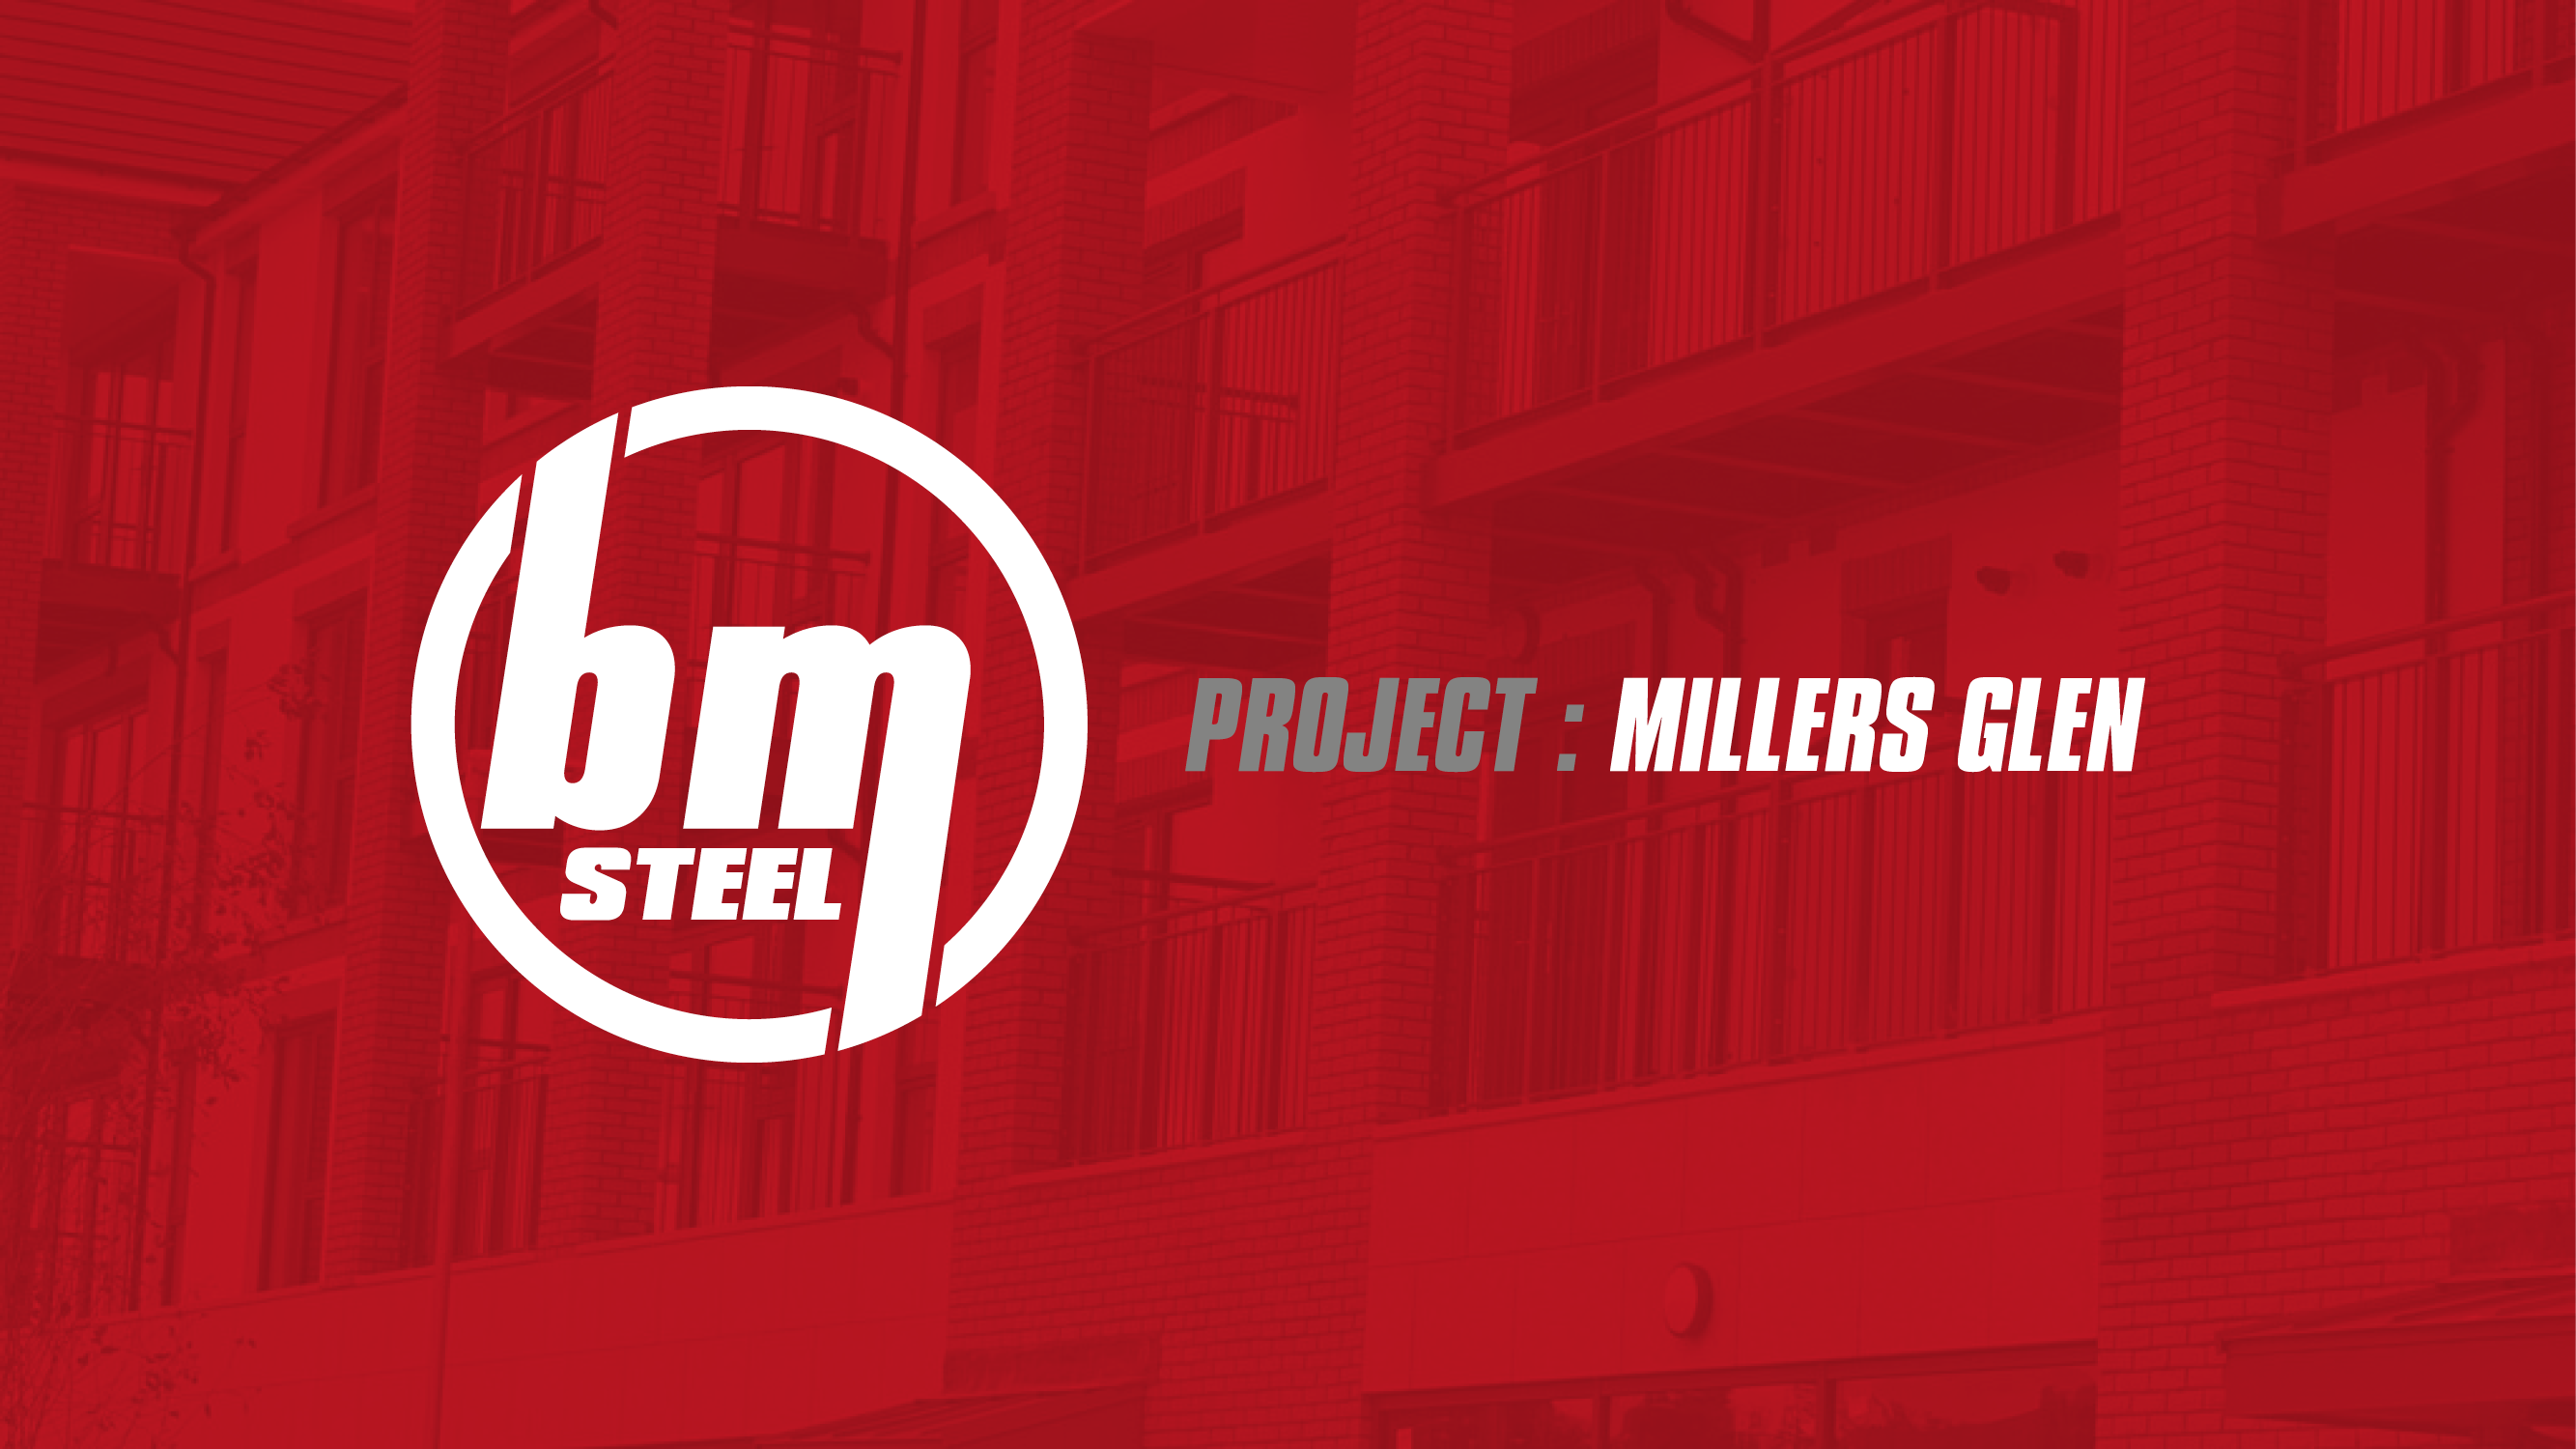 bm steel fabrications millers glen